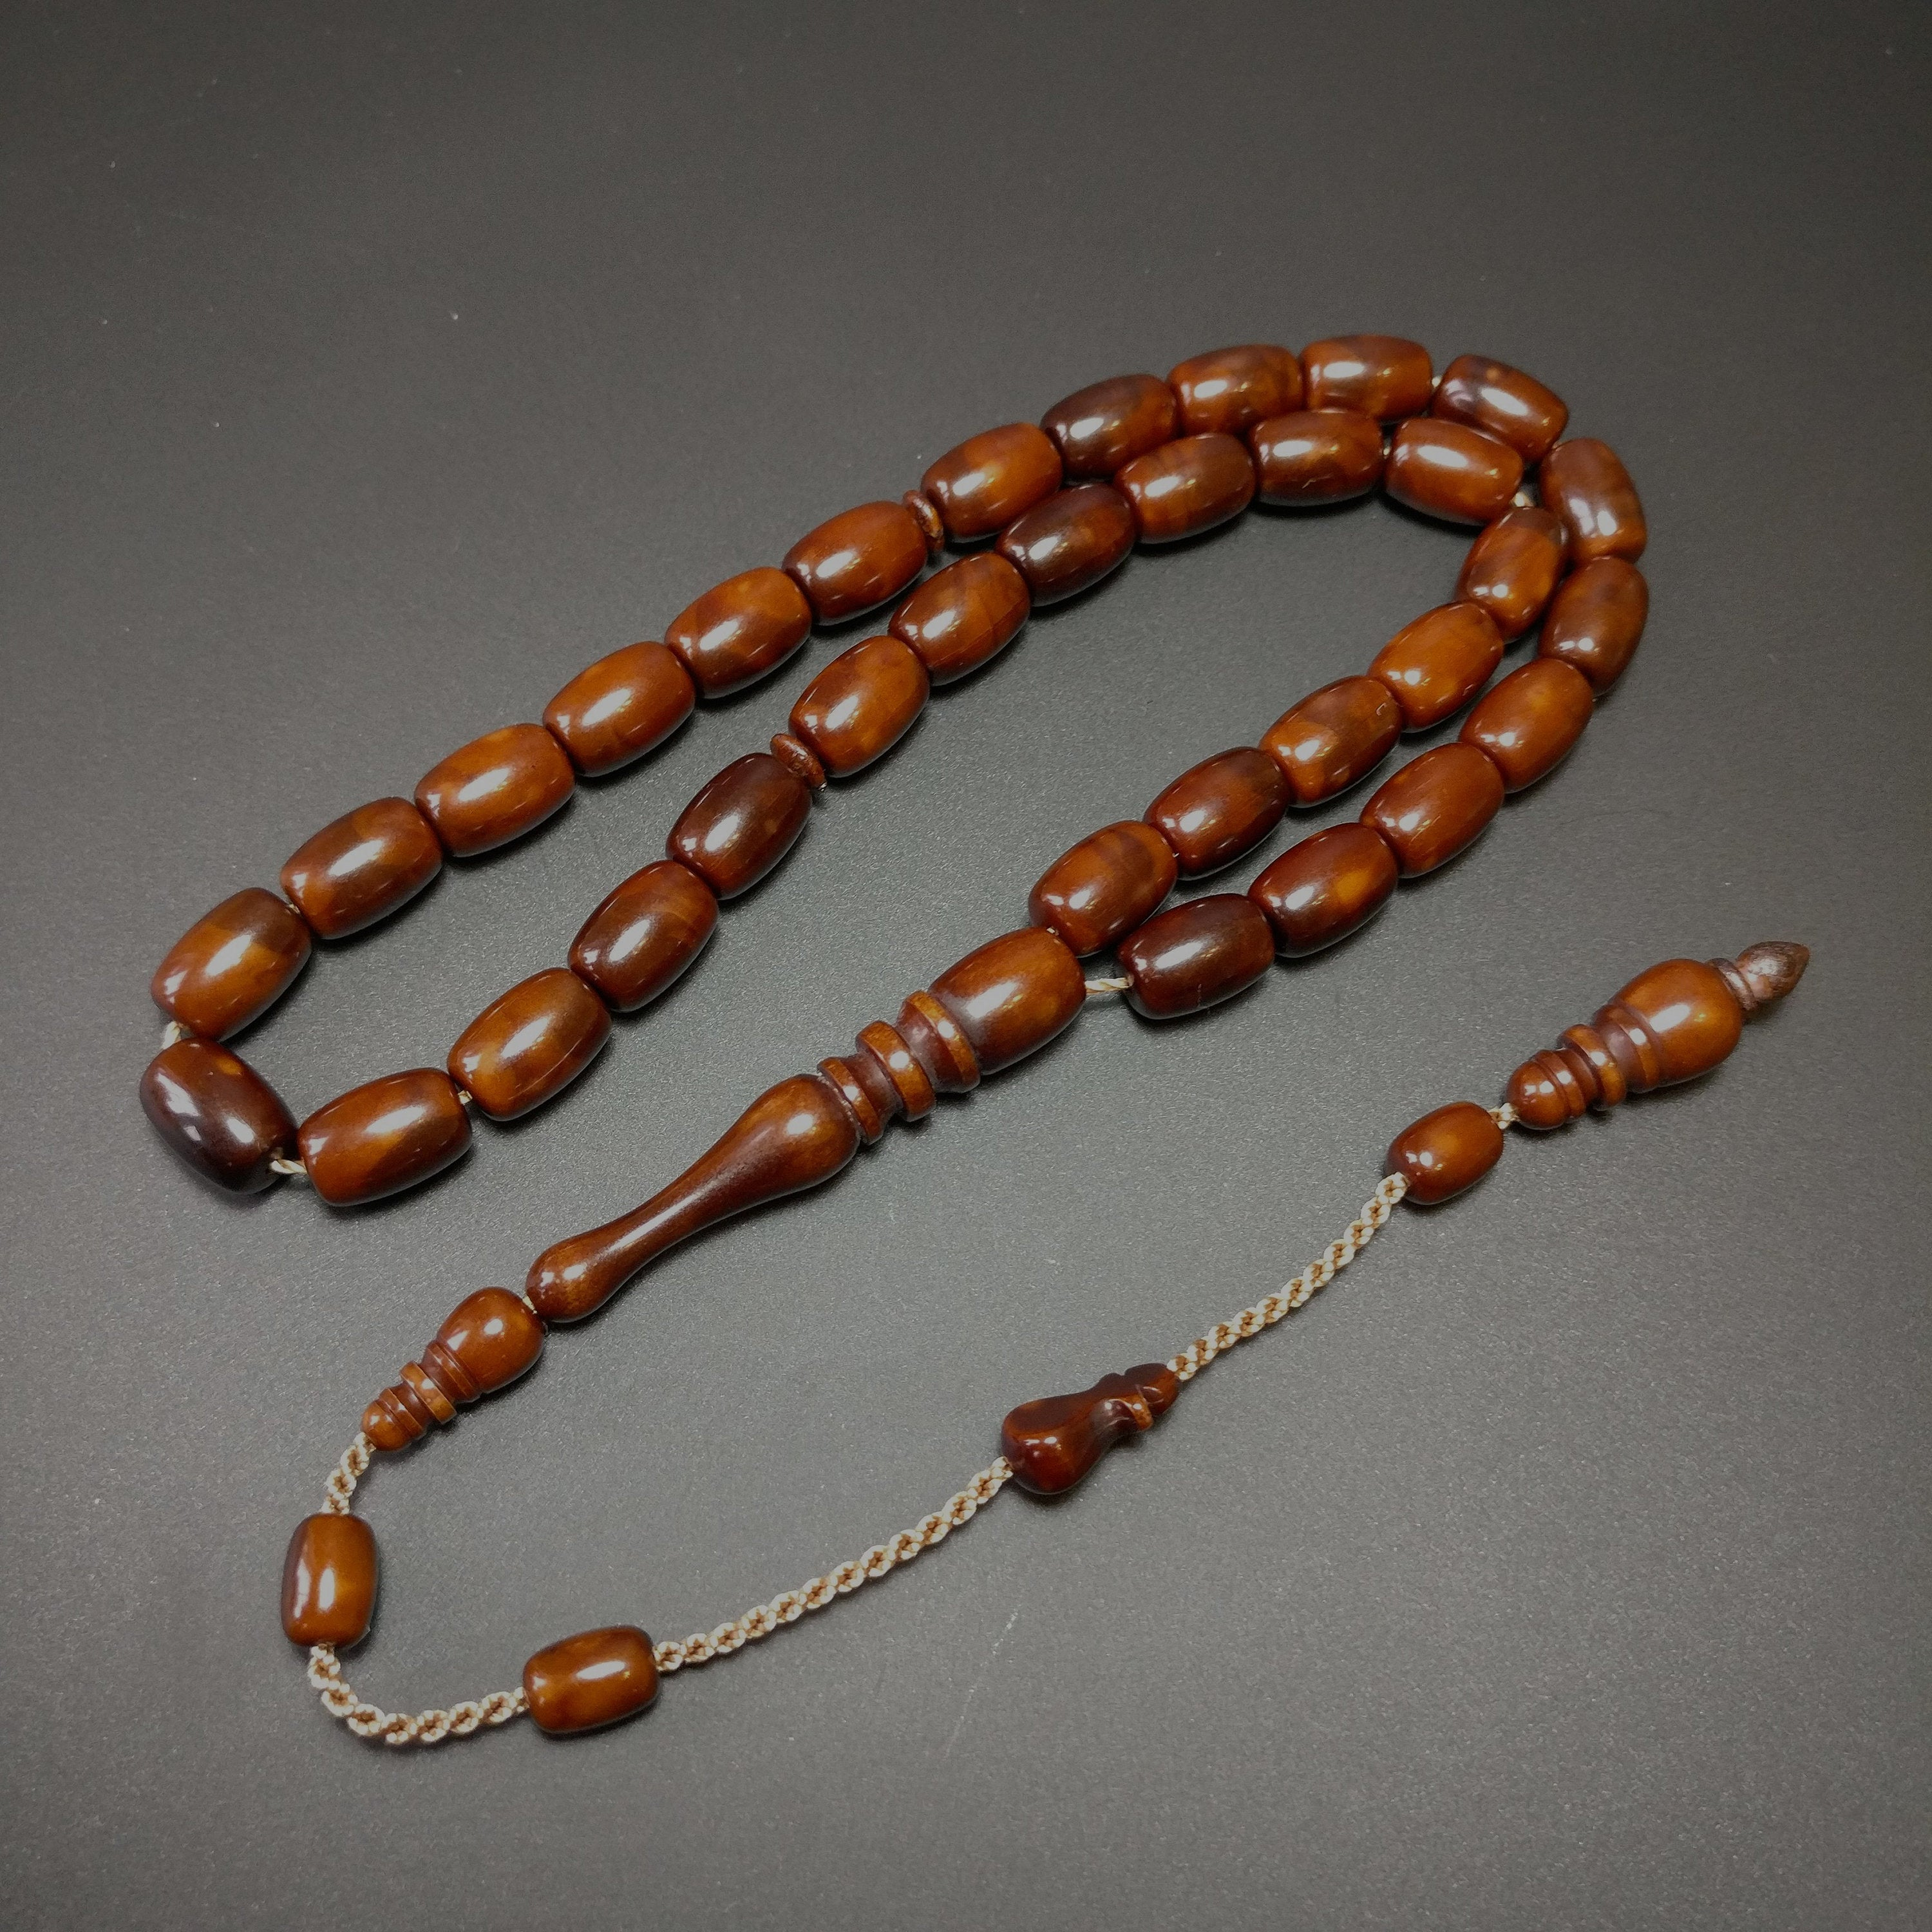 New Stylish Dark Brown Prayer Beads, Akrilik Tesbih Muslim Rosary Islam Allah Tasbih Acrylic Tasbeeh 046